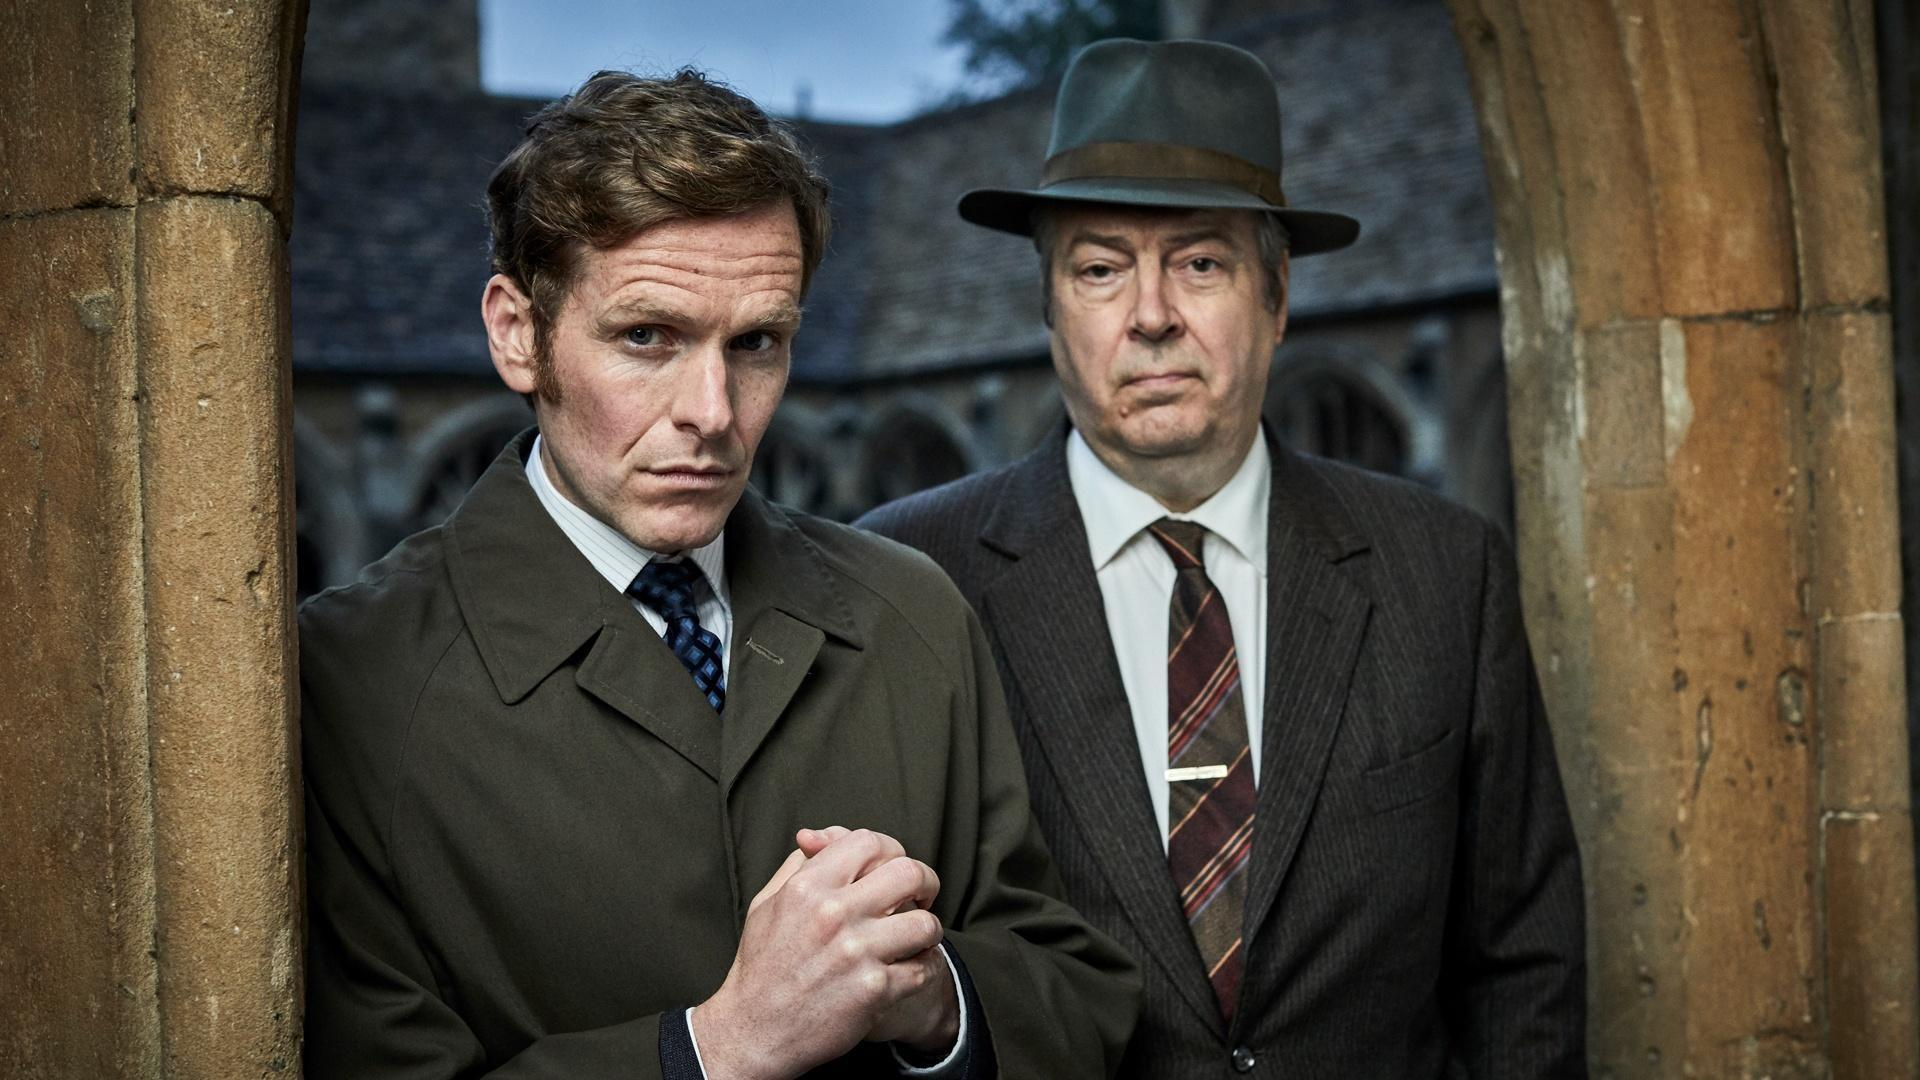 Detective Sergeant Endeavour Morse and Inspector Fred Thursday pose in a church archway.